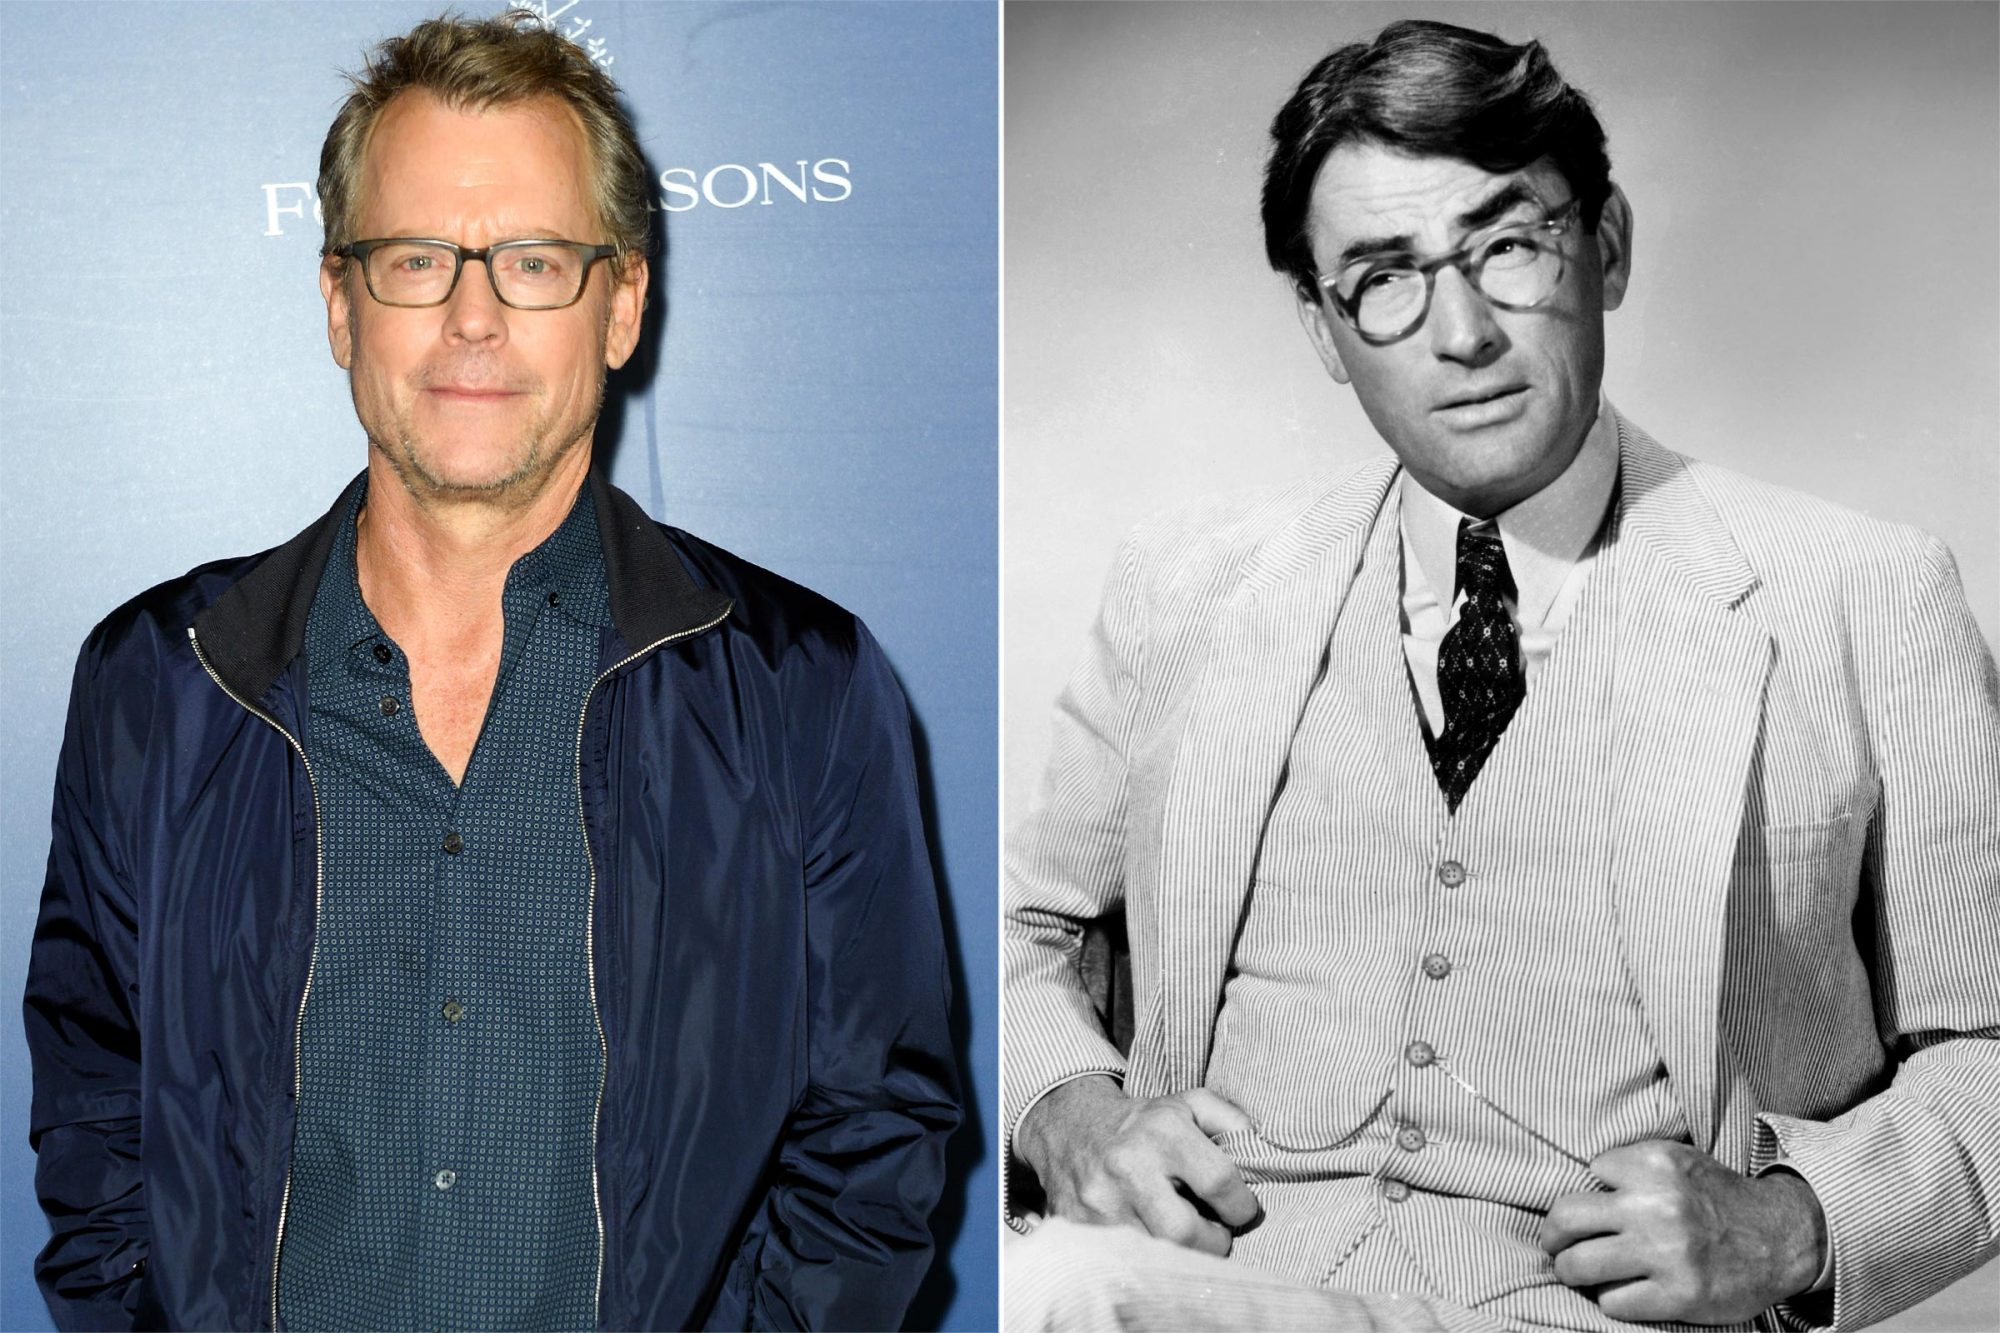 Greg Kinnear / TO KILL A MOCKINGBIRD